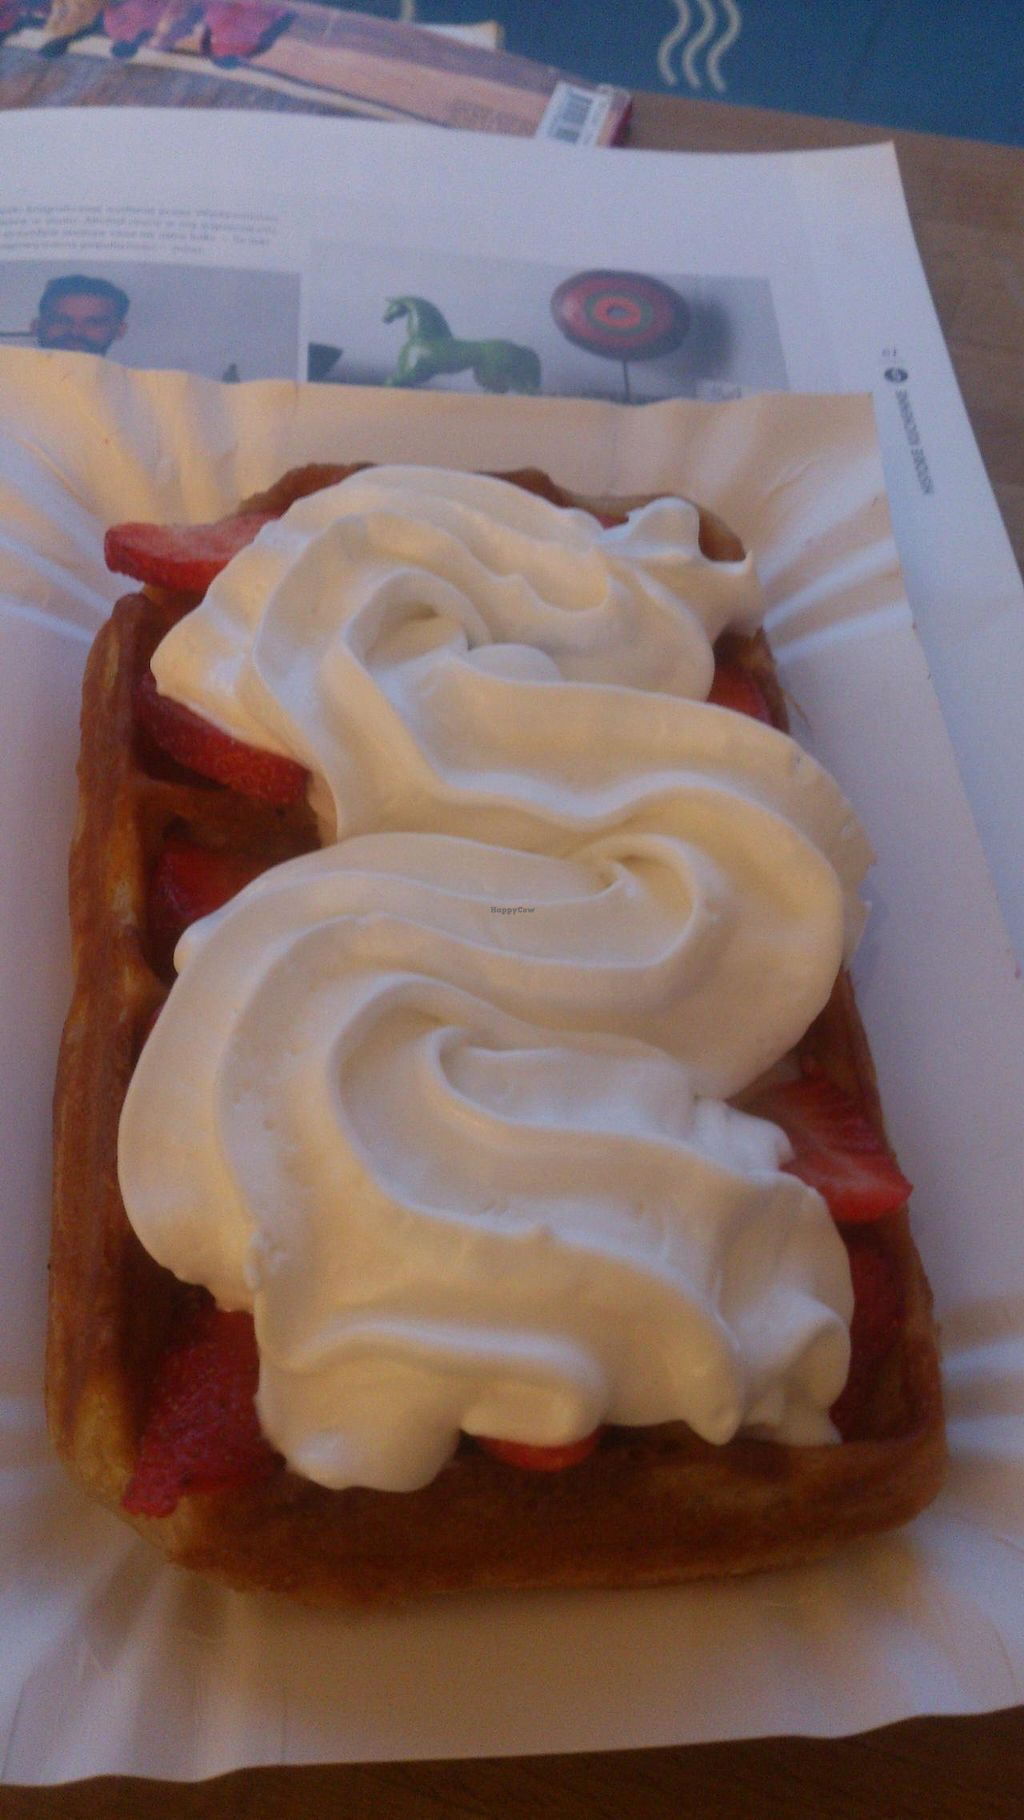 """Photo of CLOSED: Sklep z Goframi  by <a href=""""/members/profile/werkat"""">werkat</a> <br/>Vegan waffle with strawberries and coconut whipped cream <br/> May 4, 2015  - <a href='/contact/abuse/image/55641/101157'>Report</a>"""